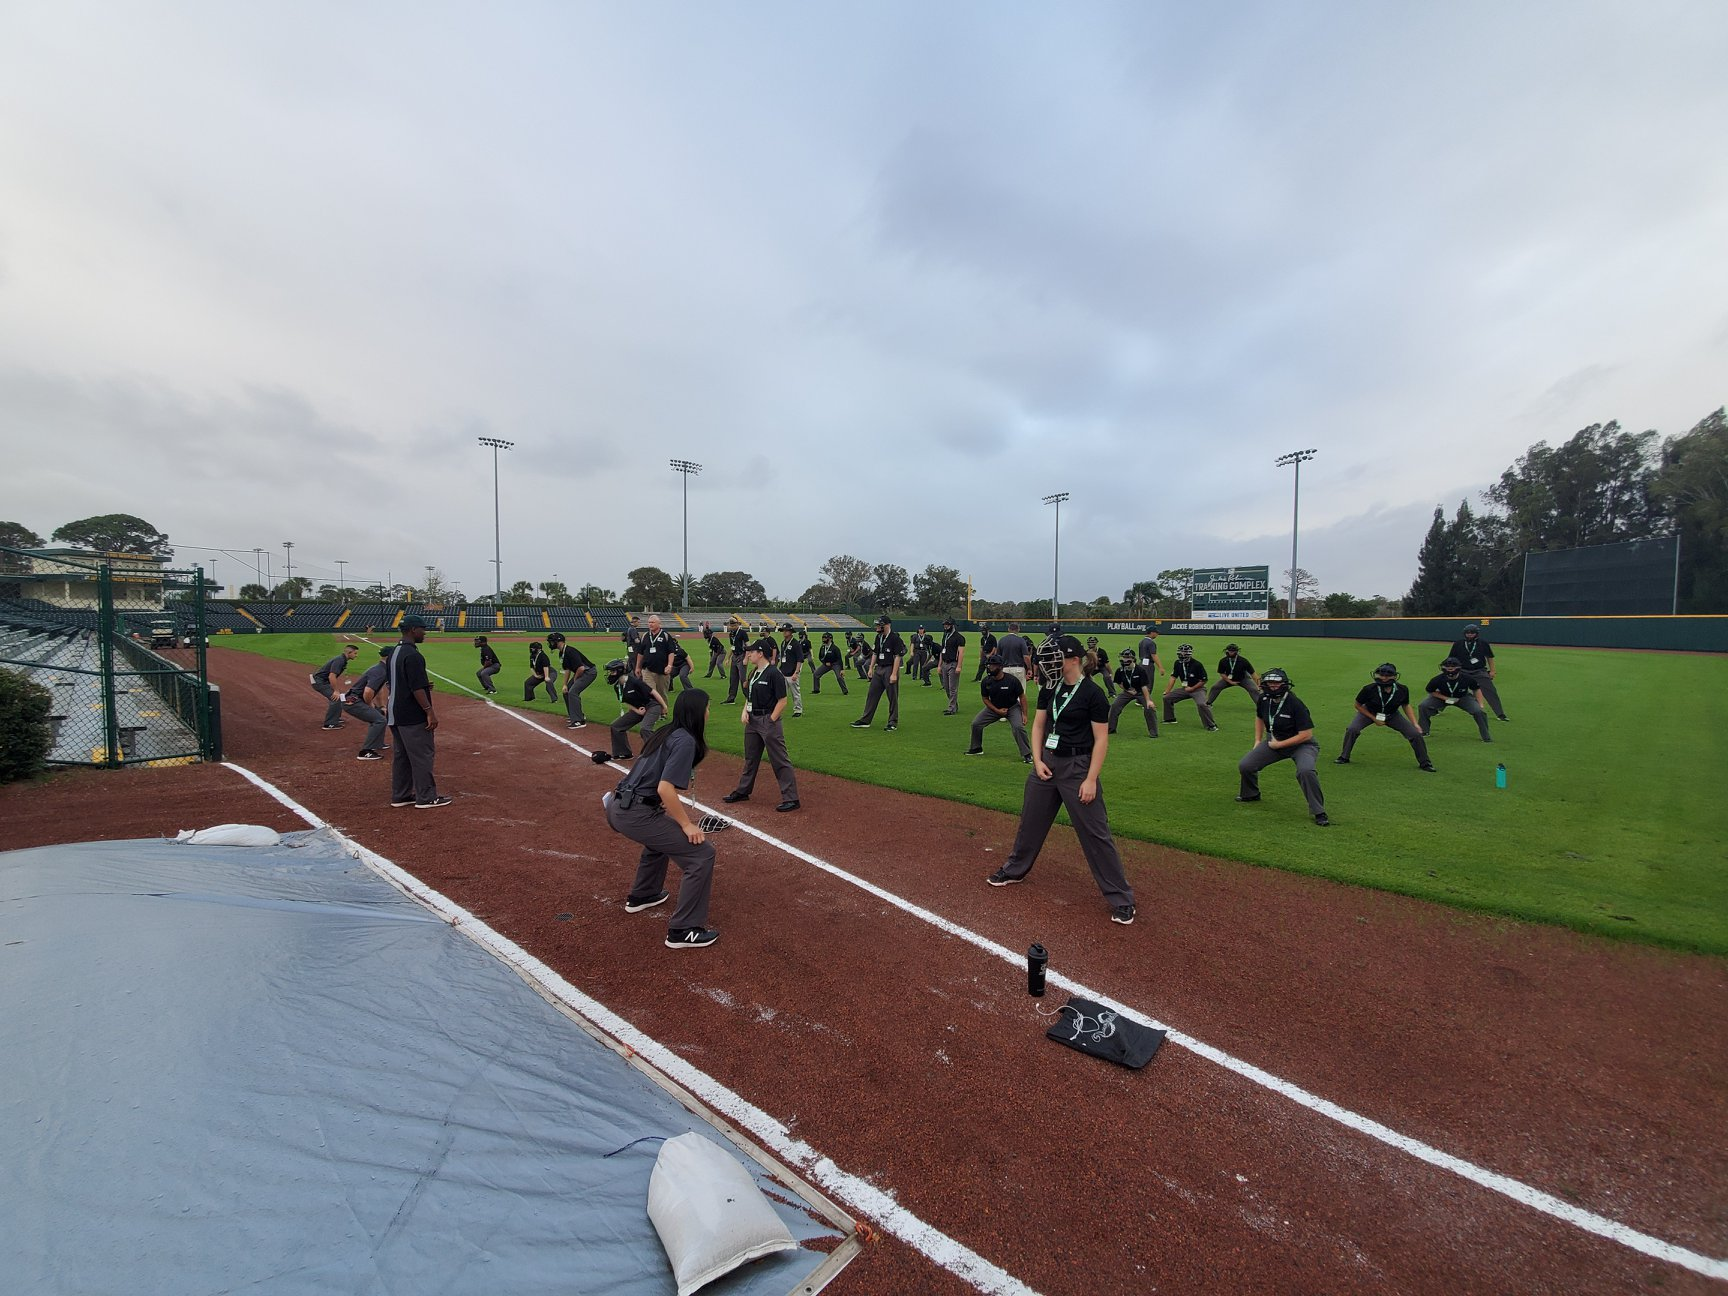 MLB Umpire Camps Training 4.0